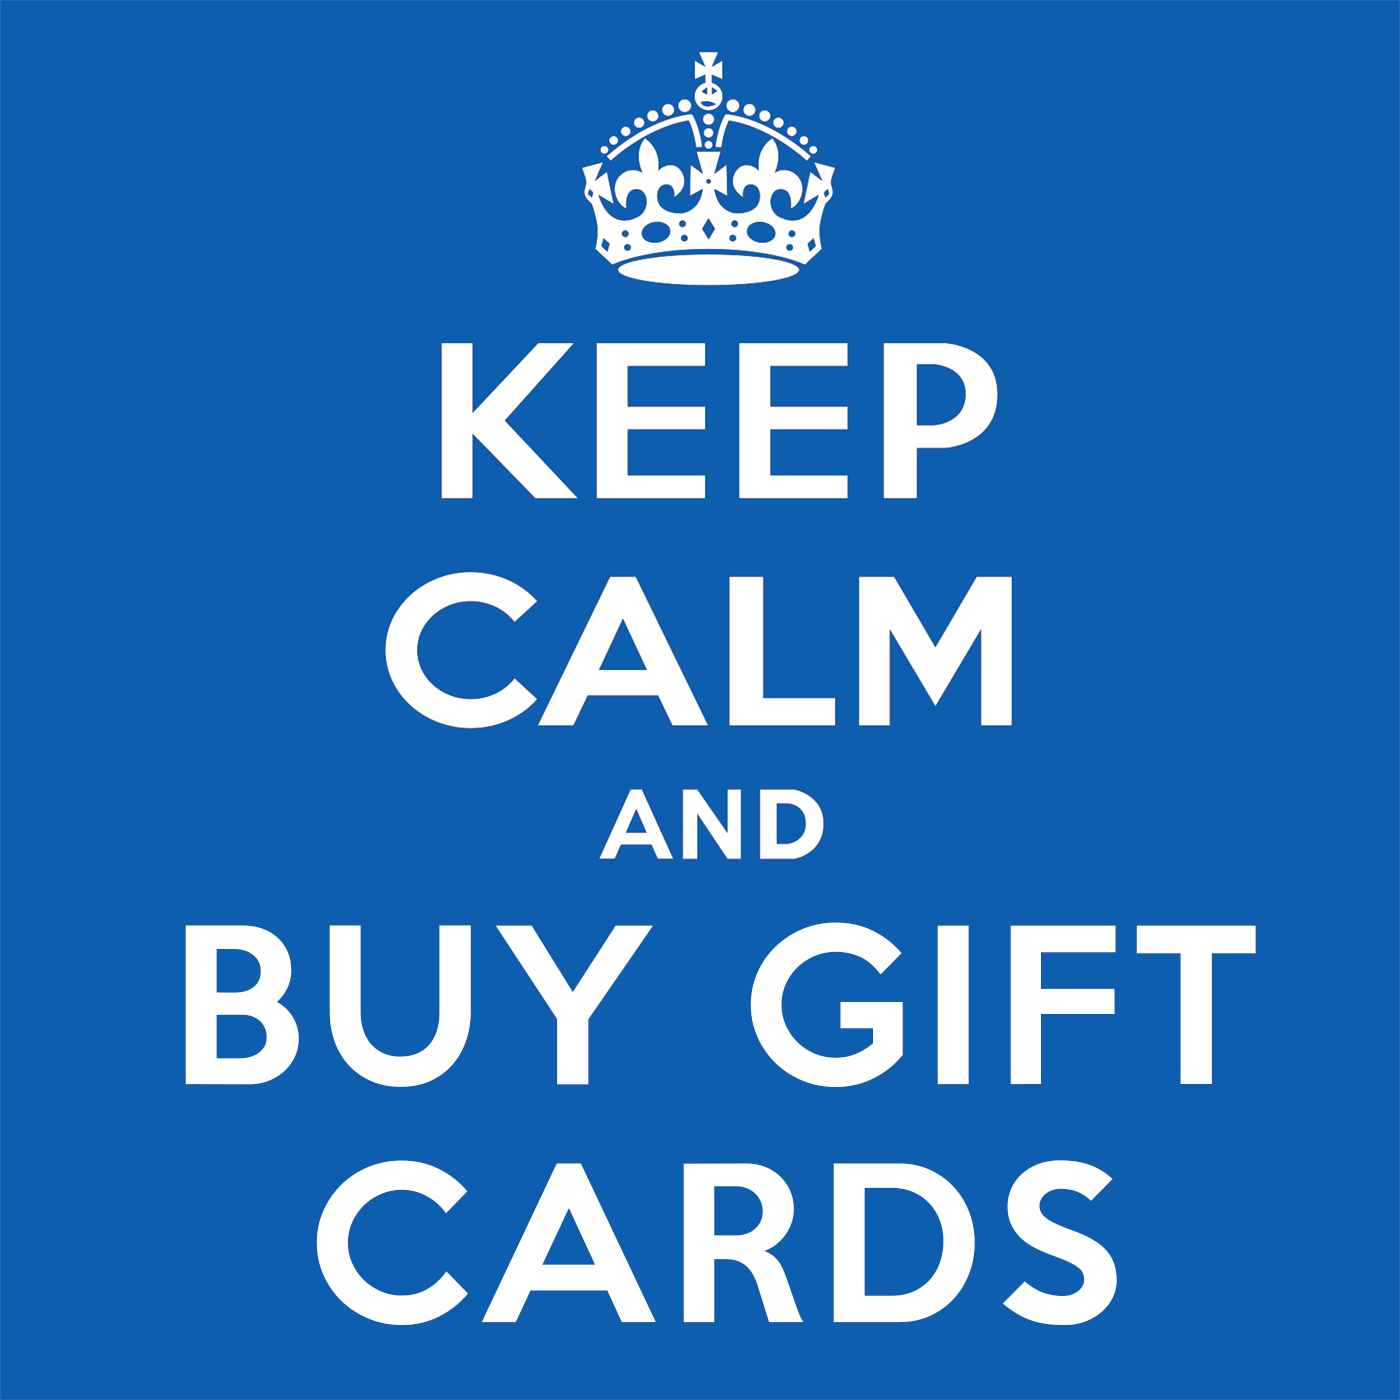 1400px-Keep_Calm_and_Carry_On_Poster-blue